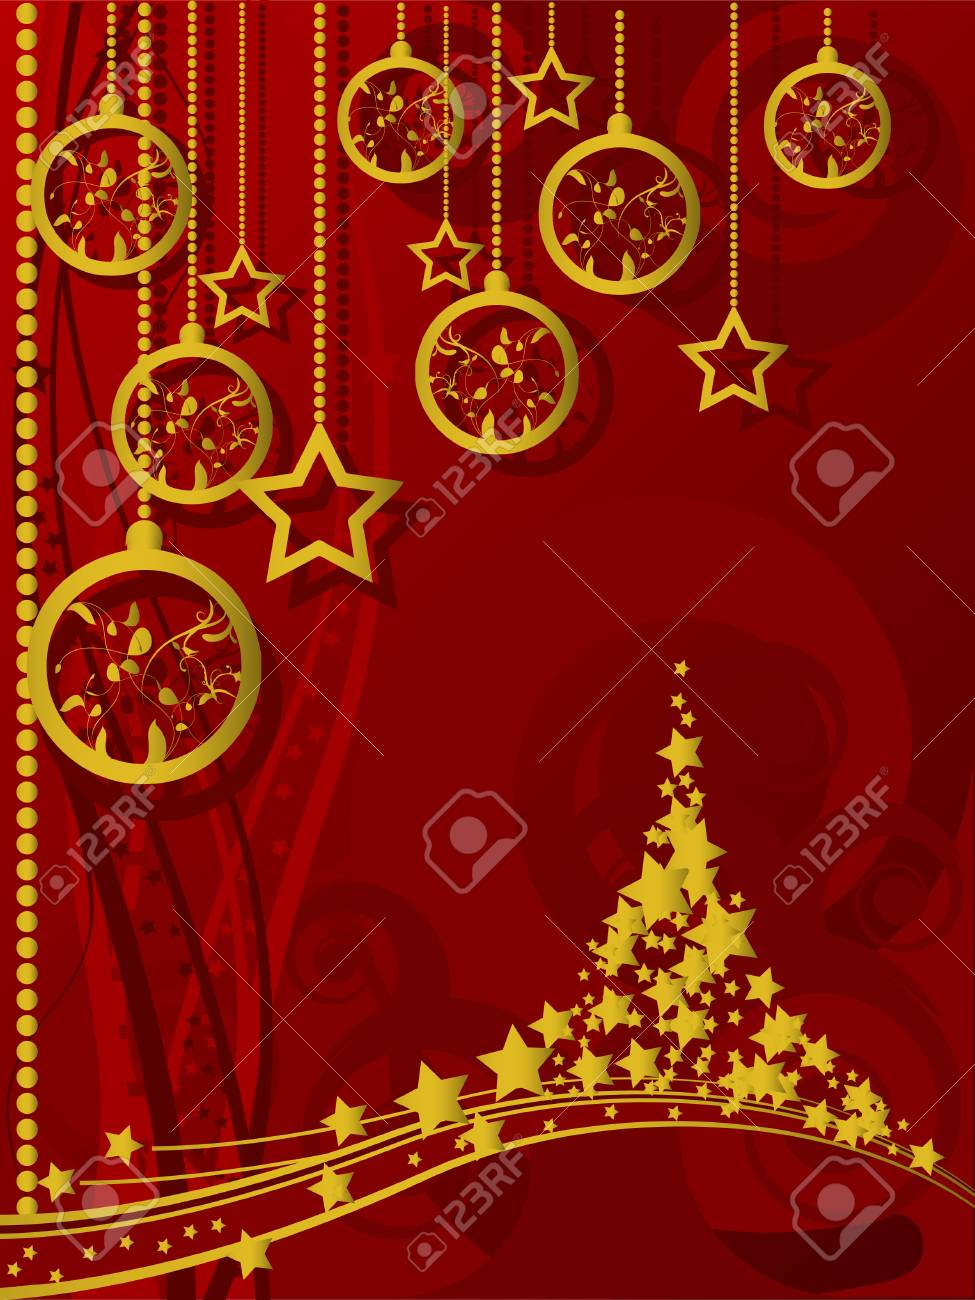 Merry Christmas and Happy New Year Stock Vector - 5300578